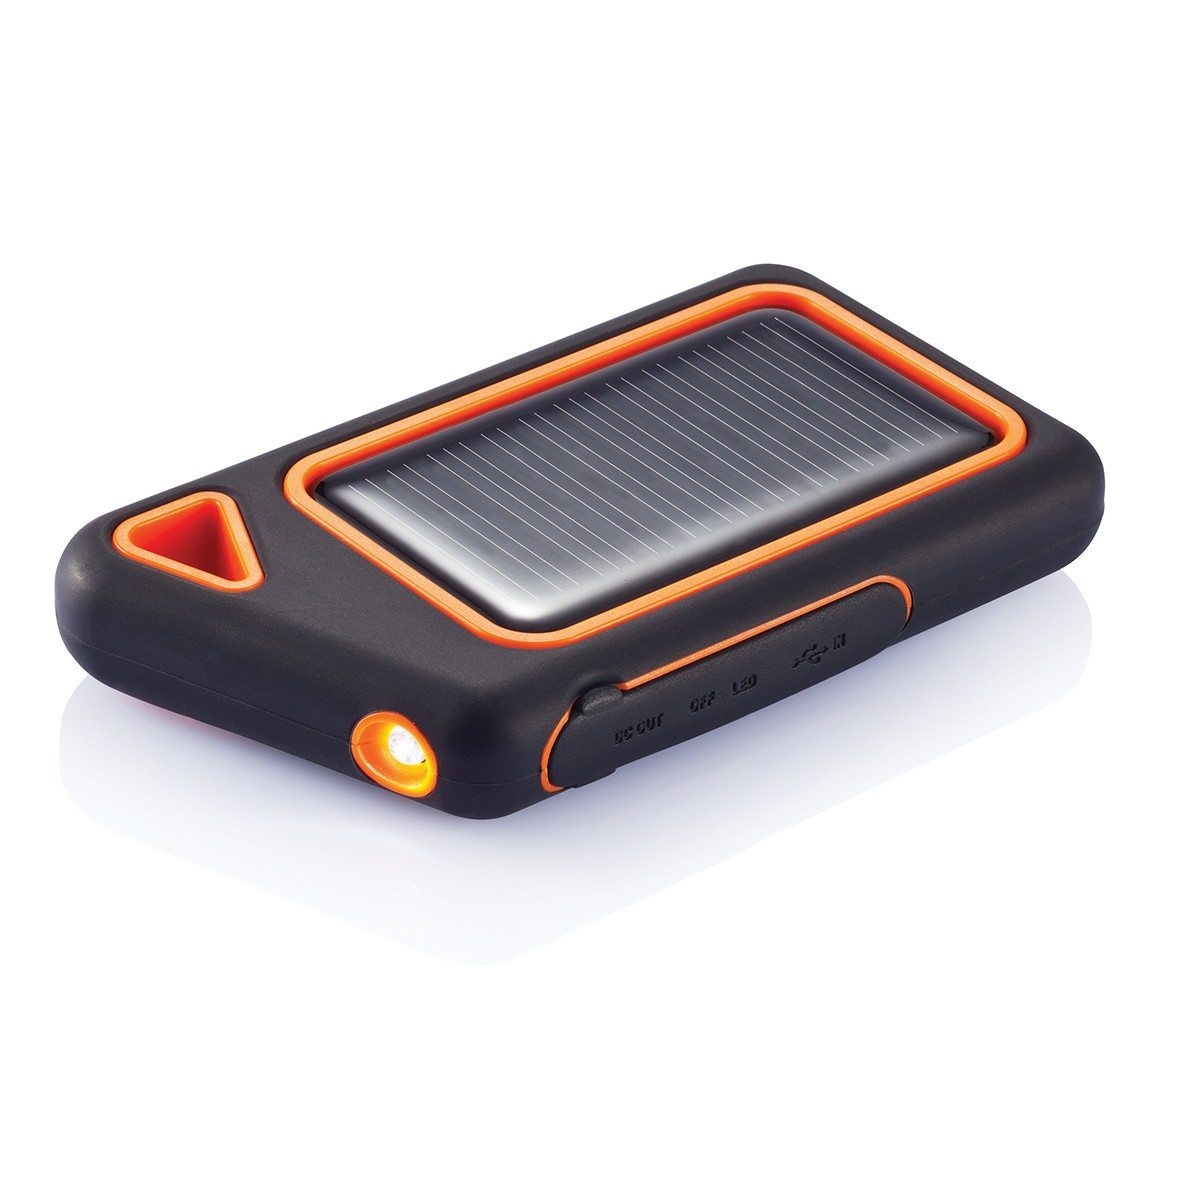 Chargeur solaire waterproof